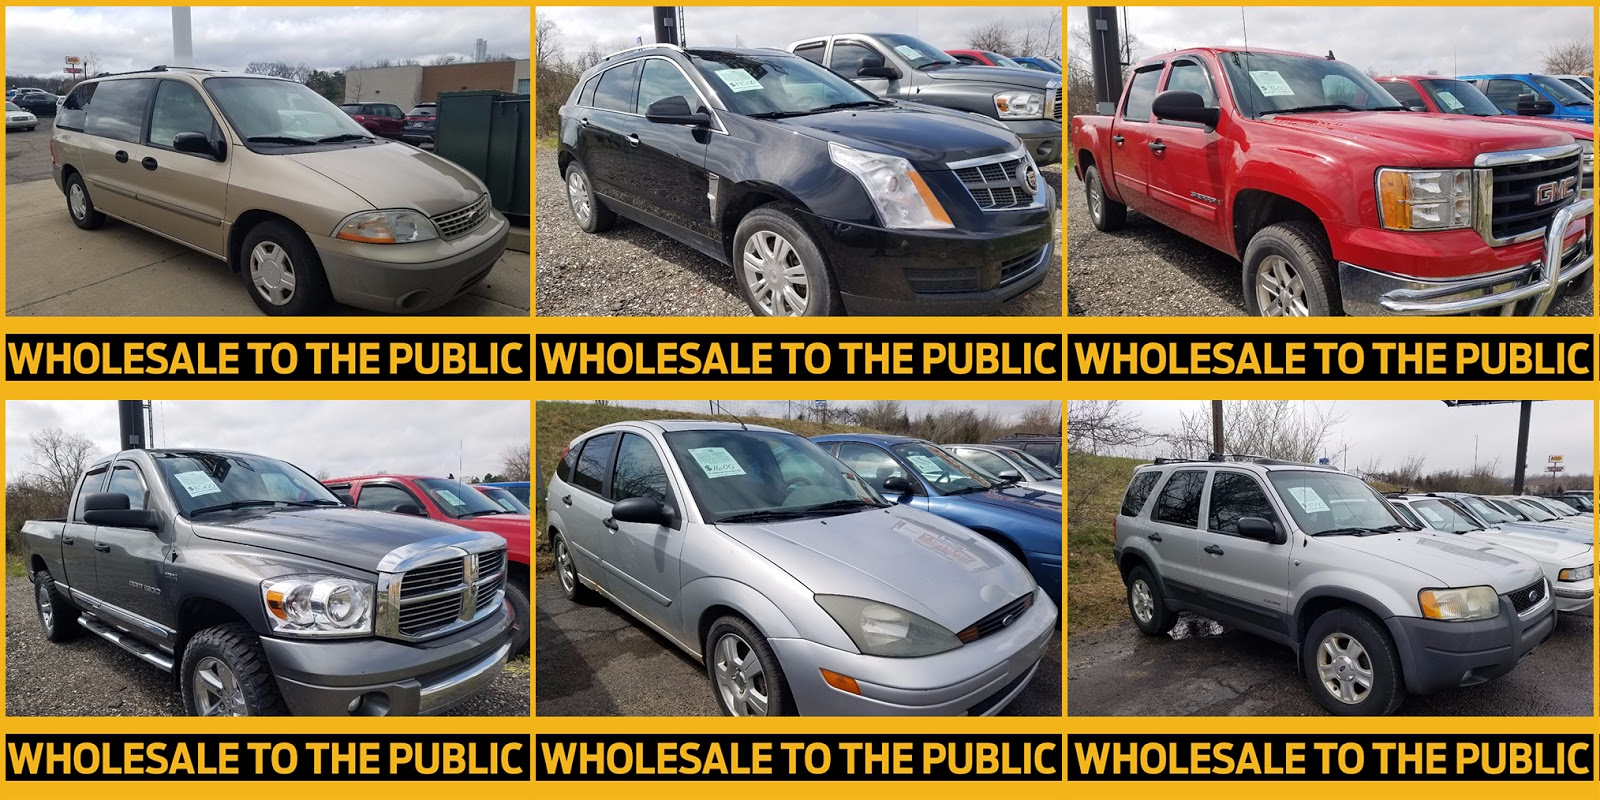 Brighton Ford Brighton Ford Now Offers Wholesale To The Public